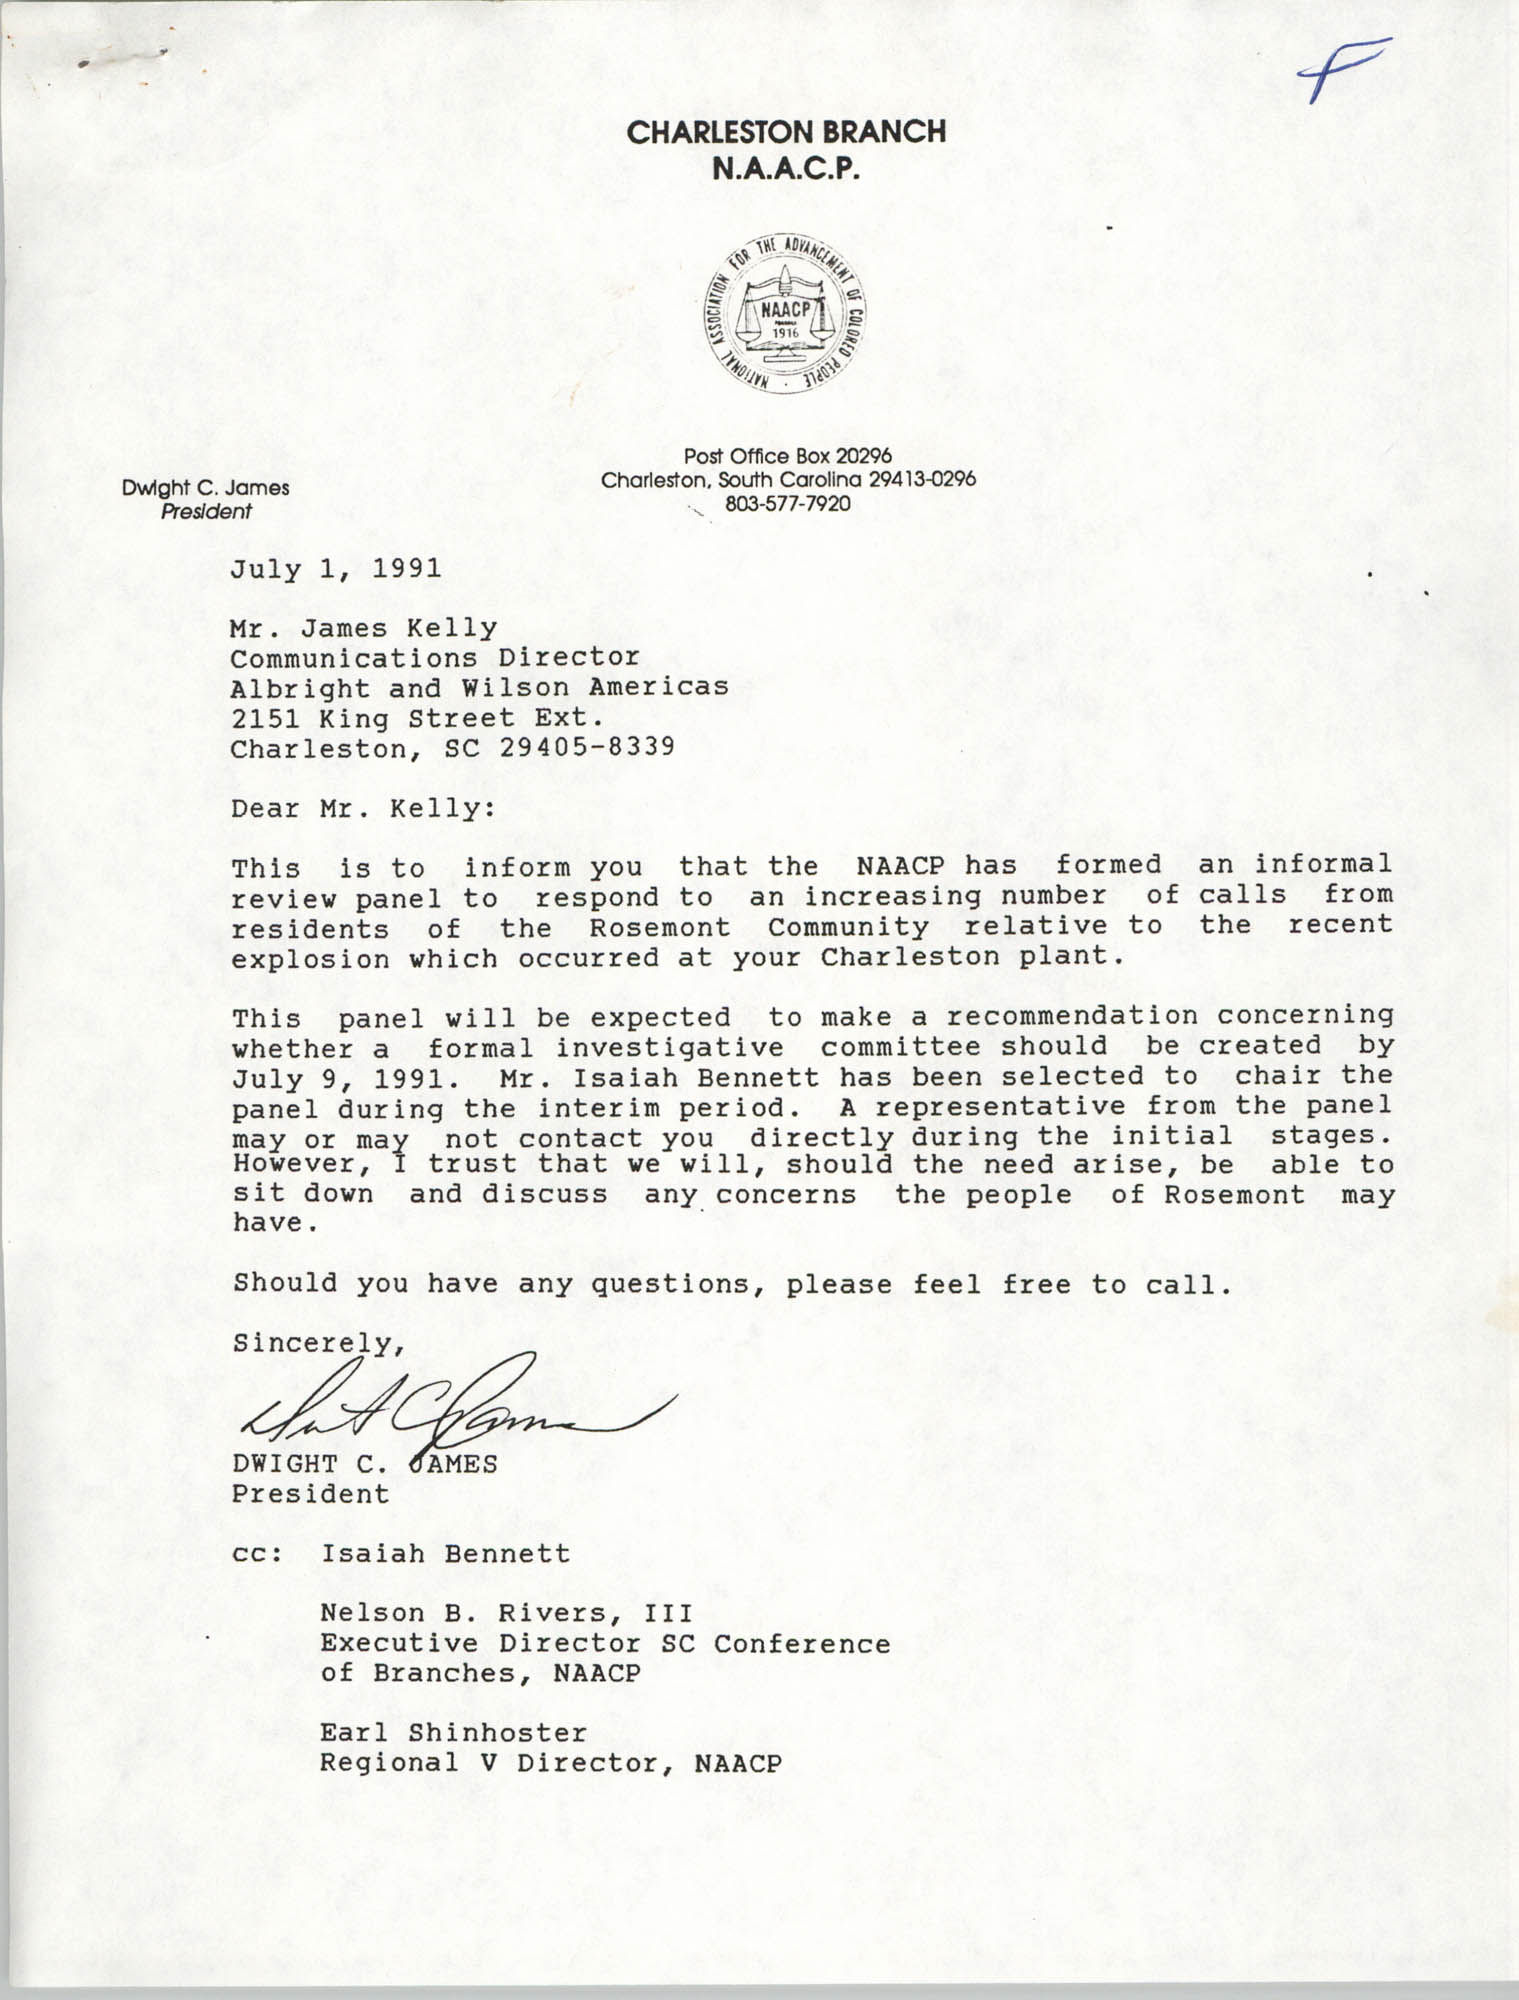 Letter from Dwight C. James to James Kelly, July 1, 1991